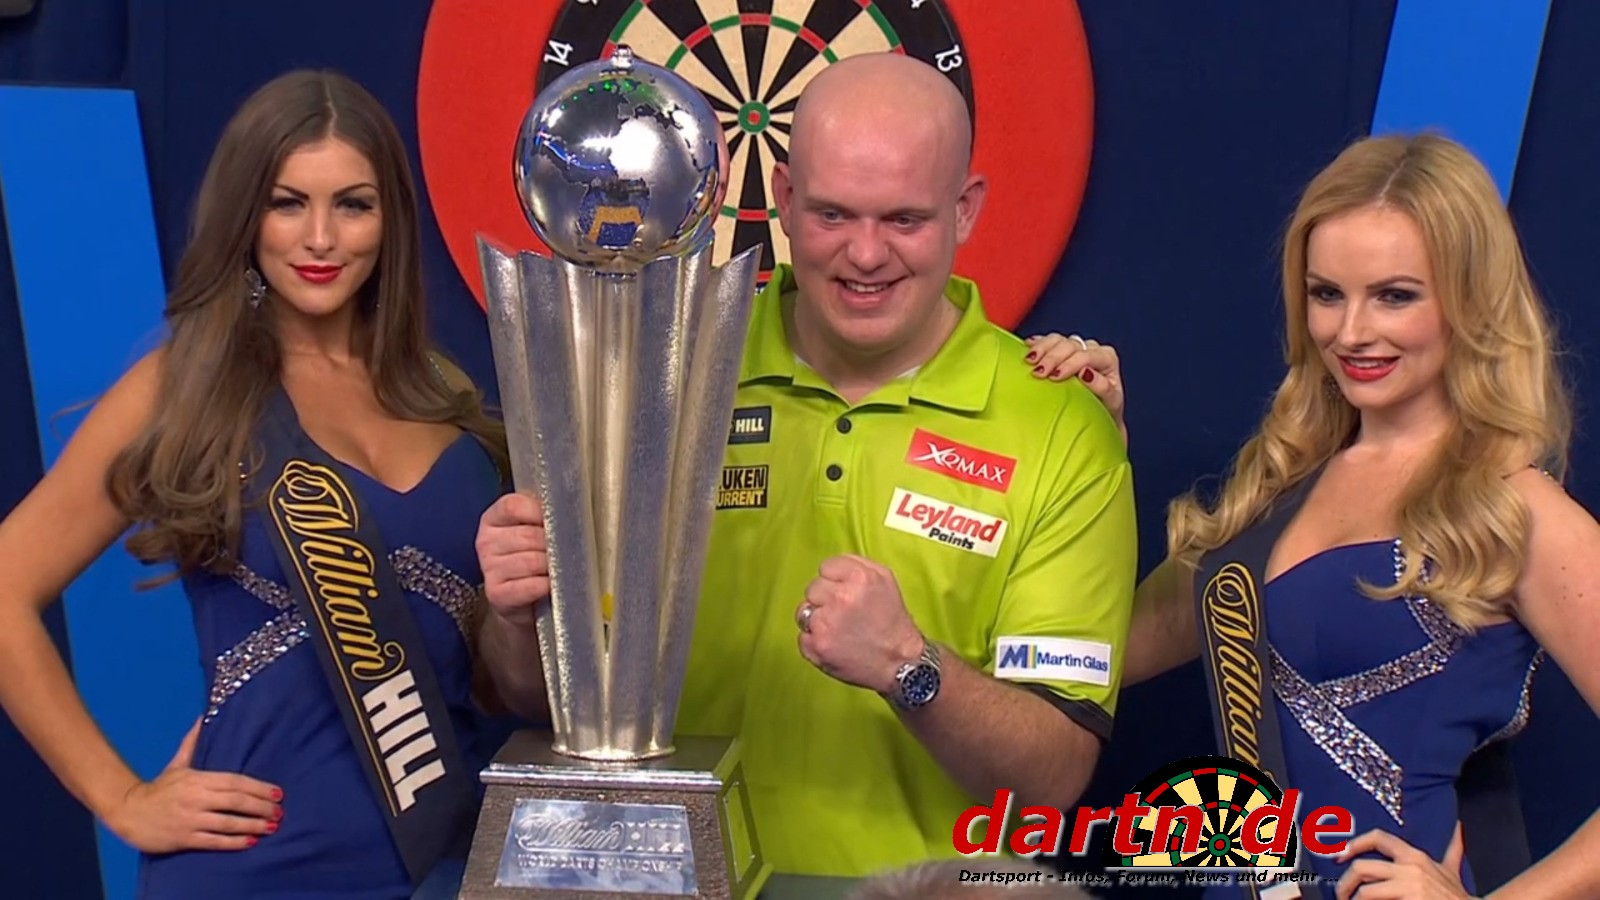 Dart Wm Pdc Dart Weltmeisterschaft 2019 World Darts Championship